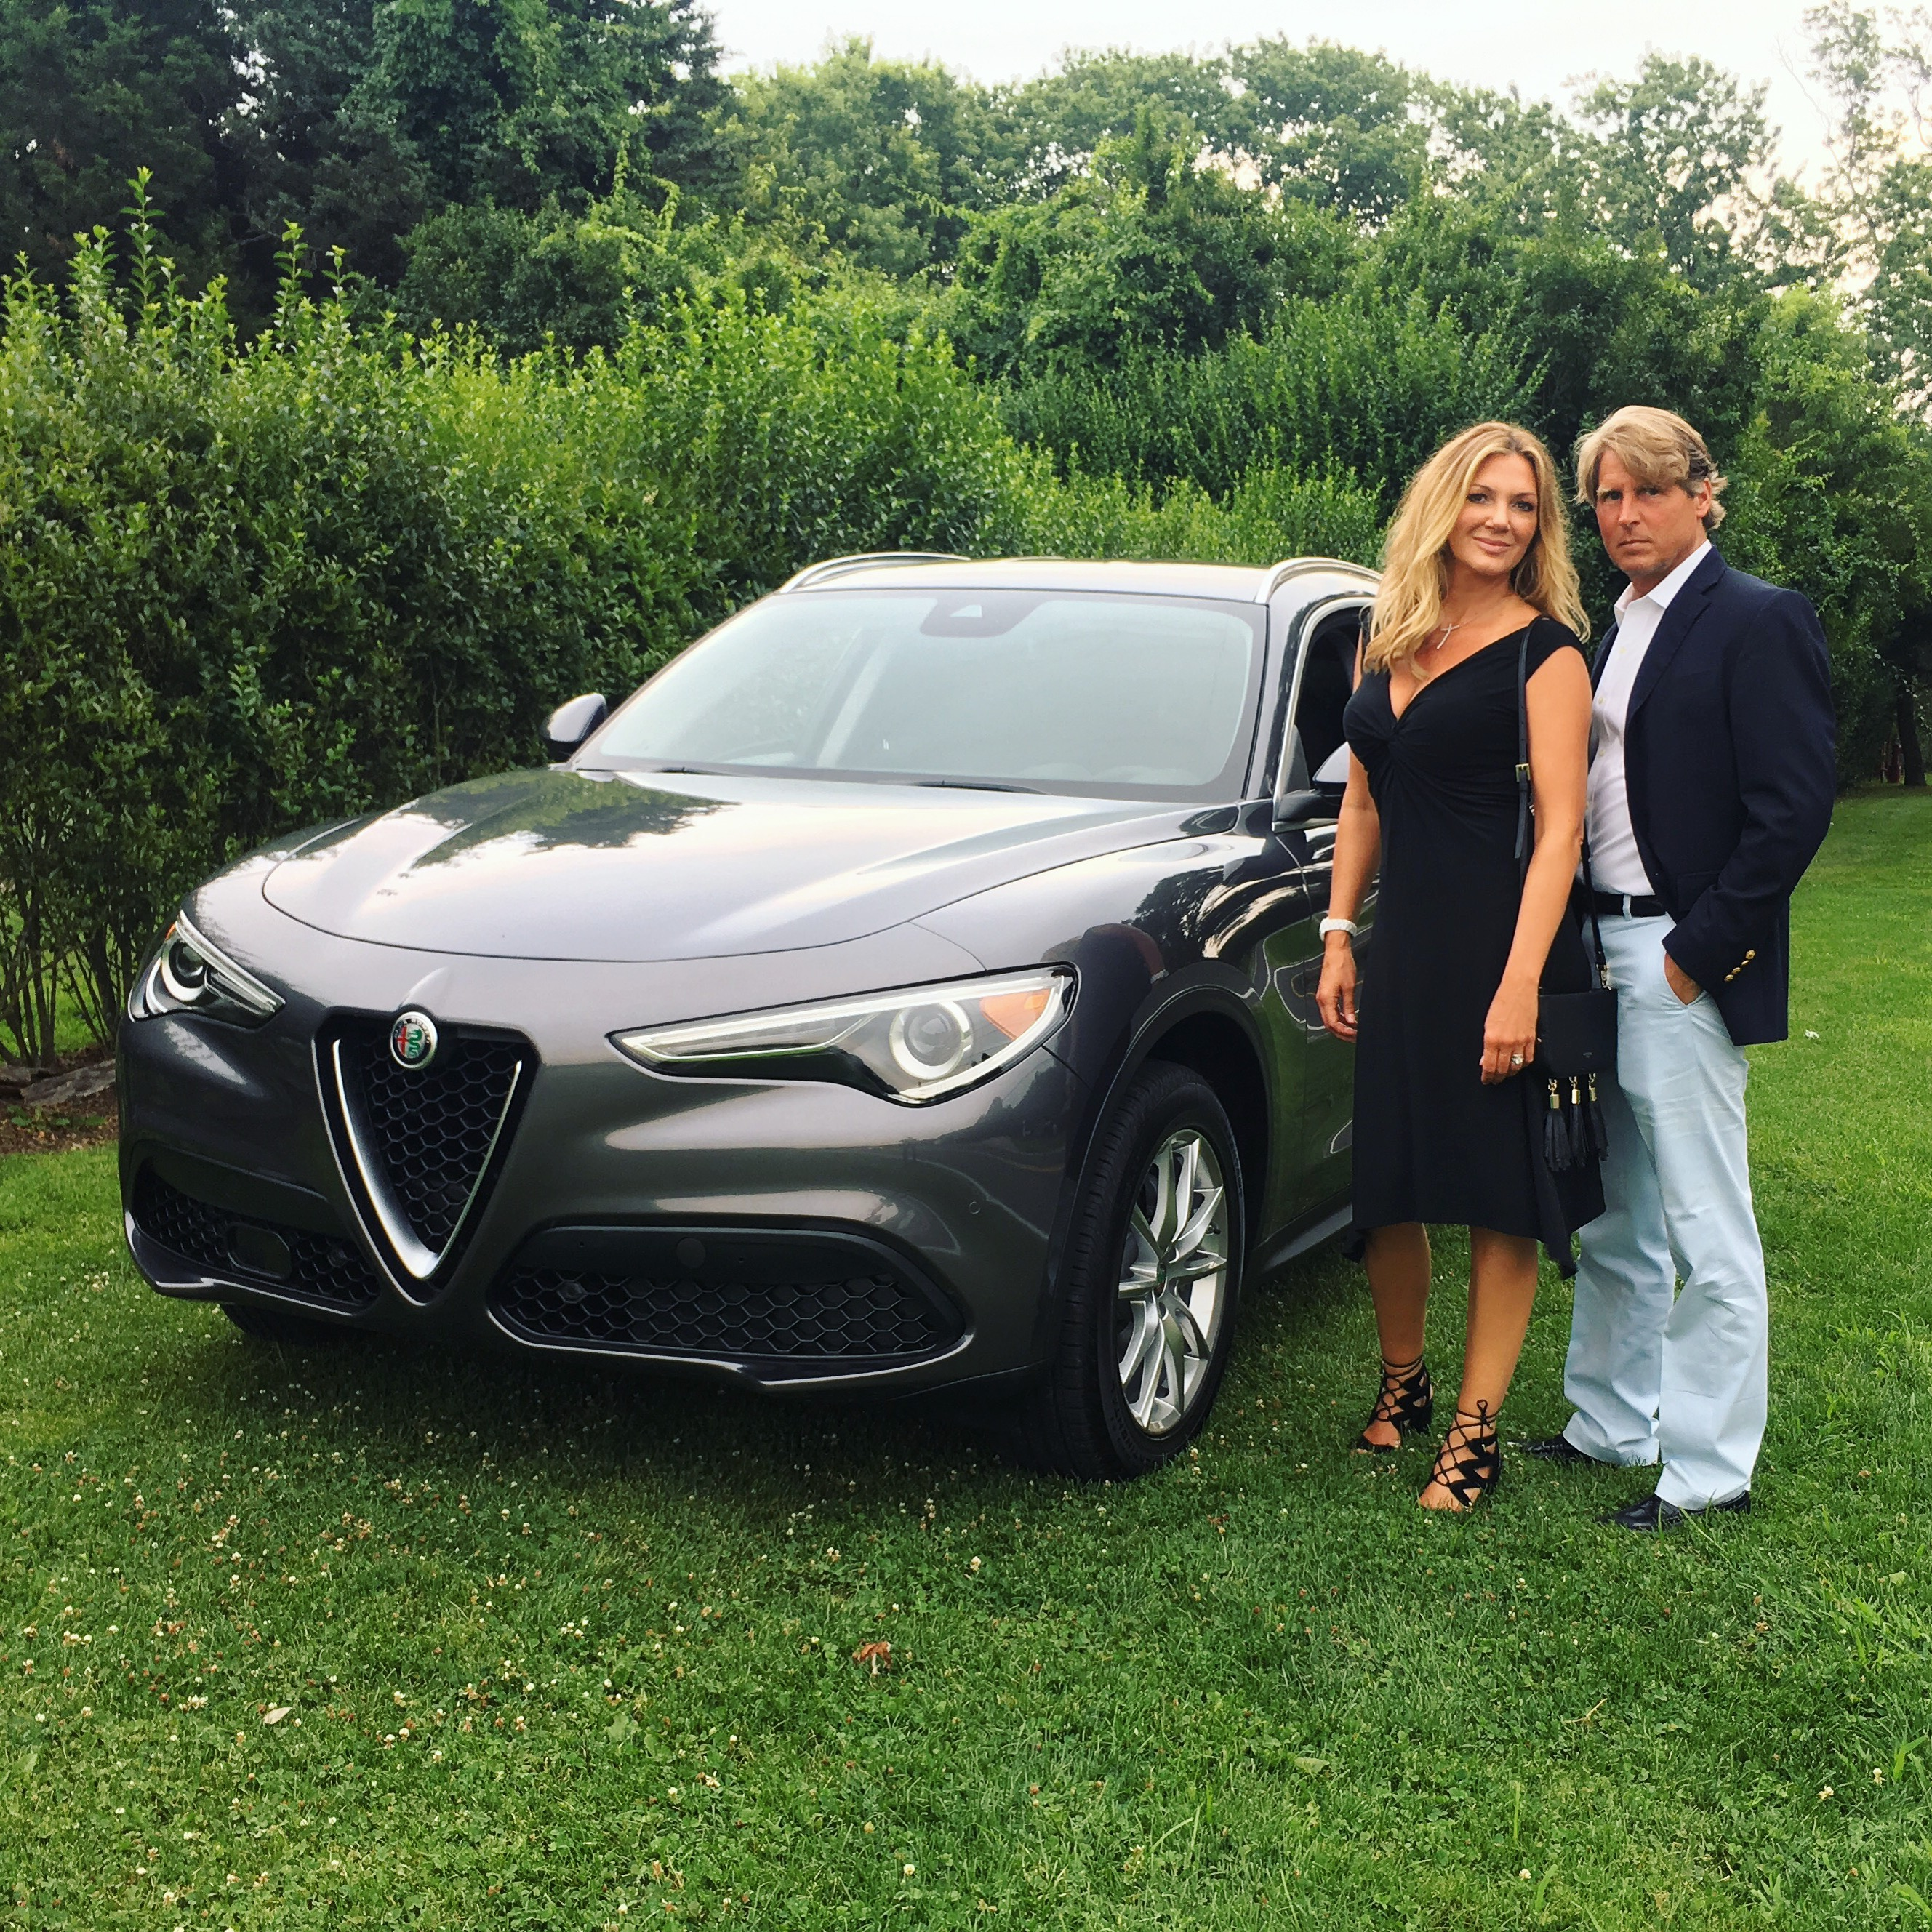 KDHamptons Hits The Road In Style In The 2018 Alfa Romeo